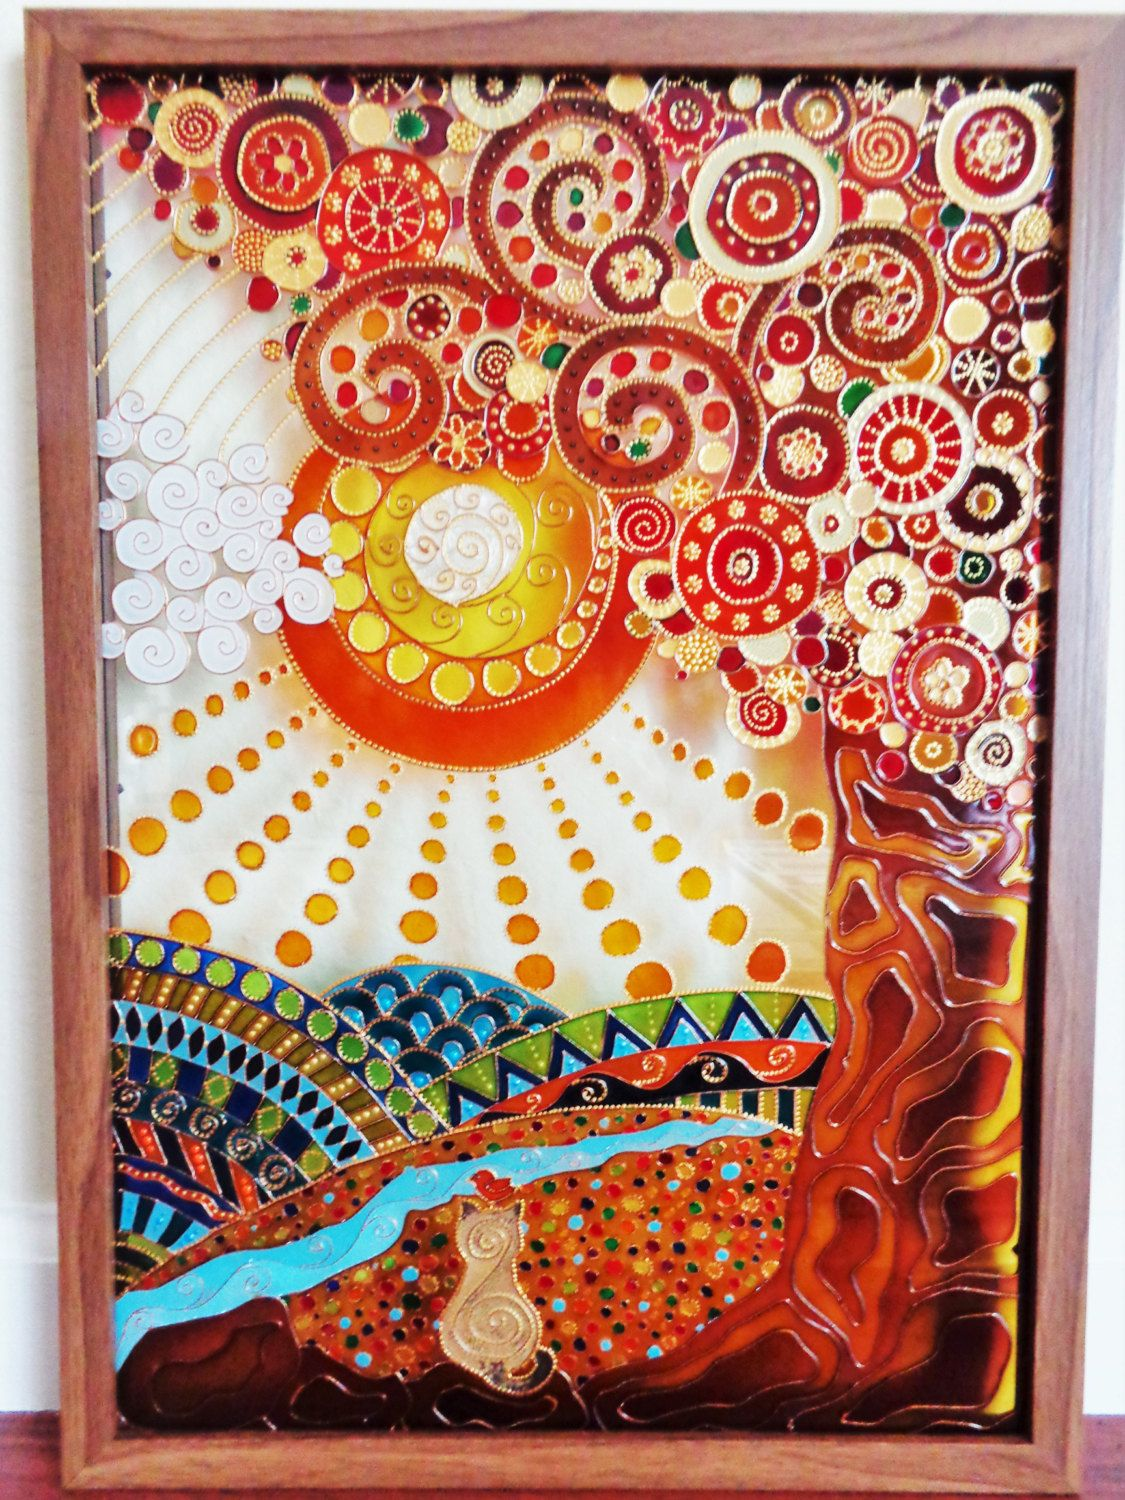 Tree Of Life 15 X21 Glass Painting Glass Pannel Wall Decor Bohemian Decor Original Art Etsy Modern Art Abstract Landscape Glass Painting Designs Stained Glass Art Glass Painting